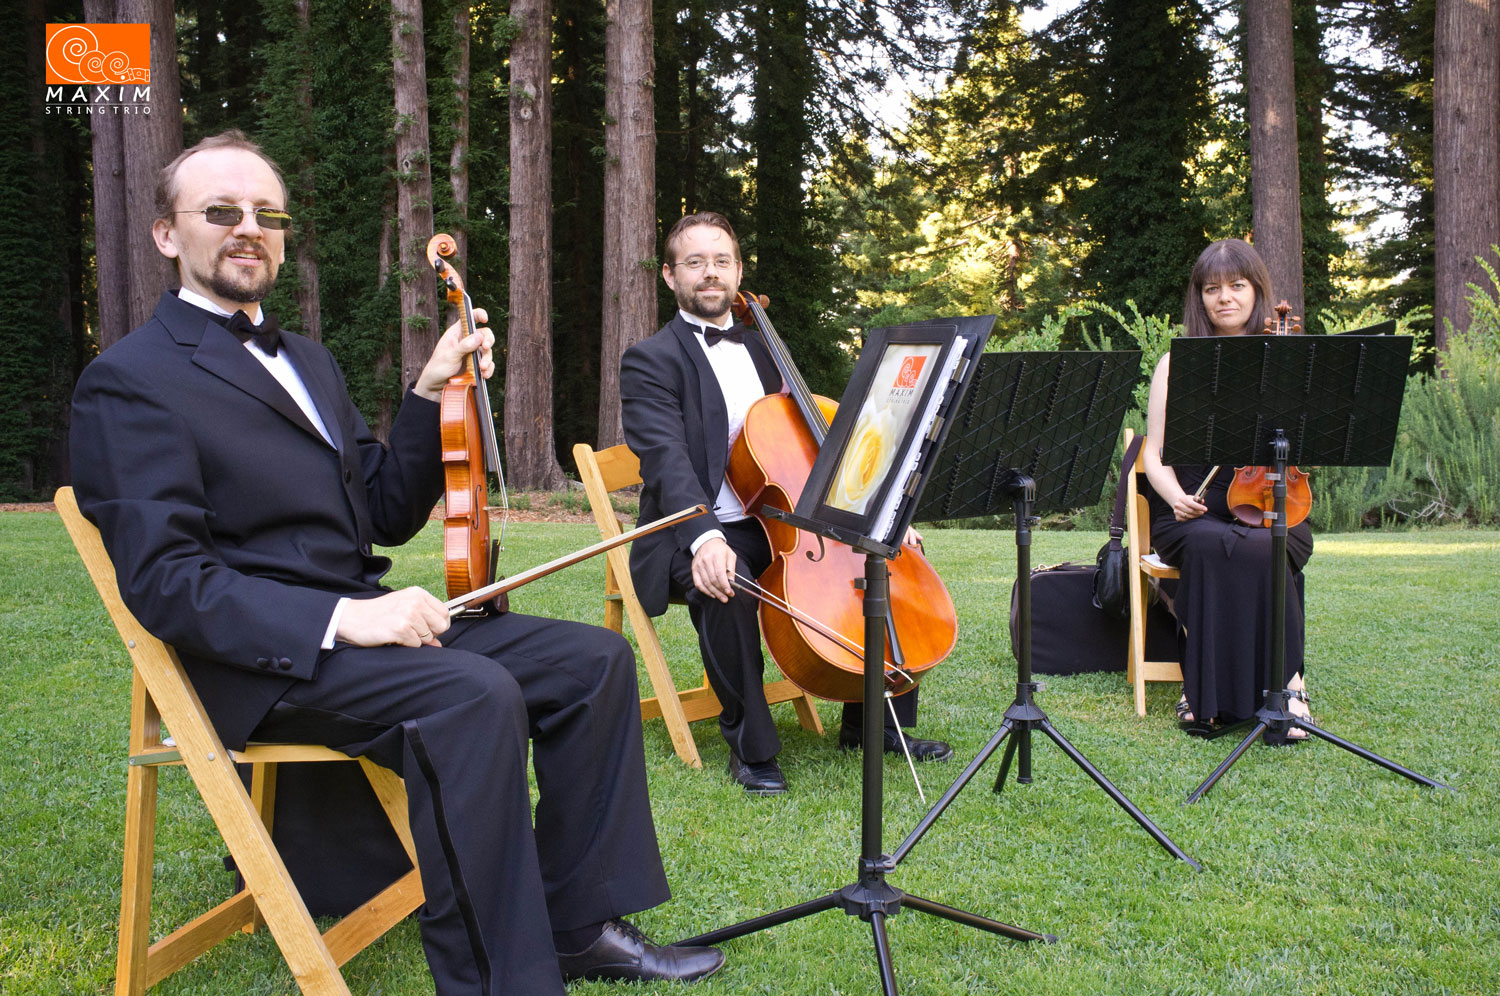 Trio Maxim at Woodside CA 2016